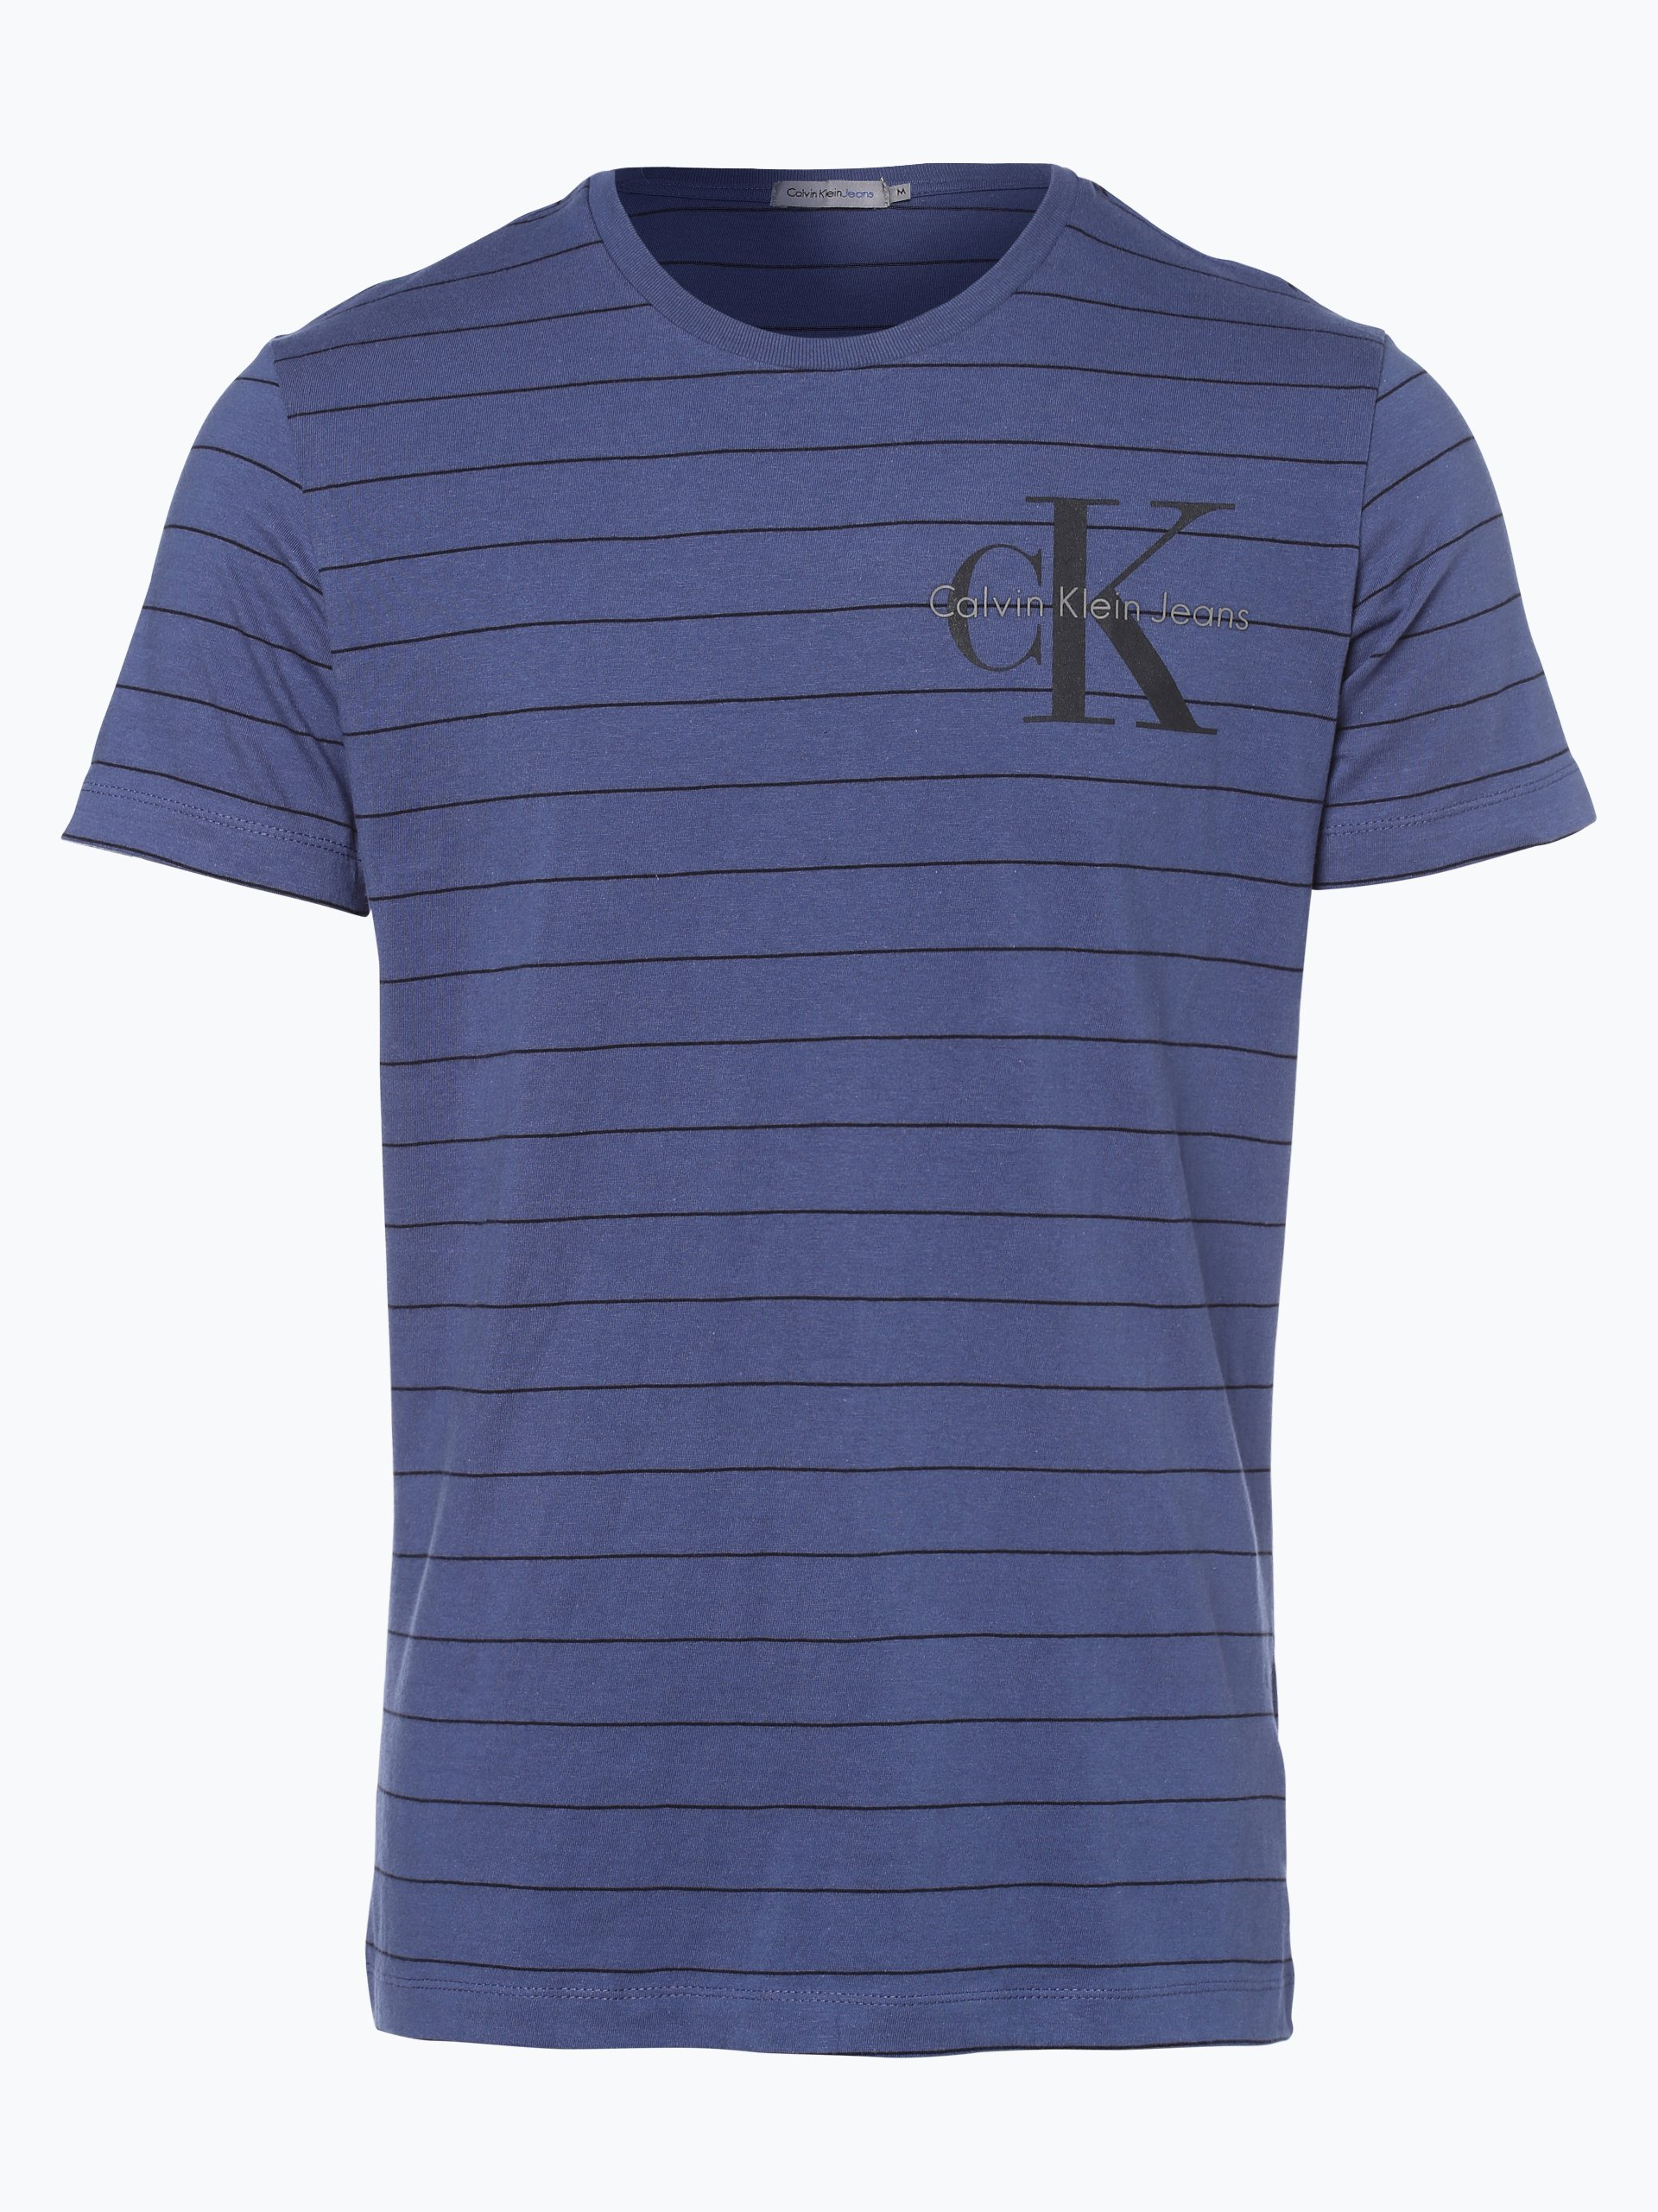 calvin klein jeans herren t shirt blau gemustert online. Black Bedroom Furniture Sets. Home Design Ideas